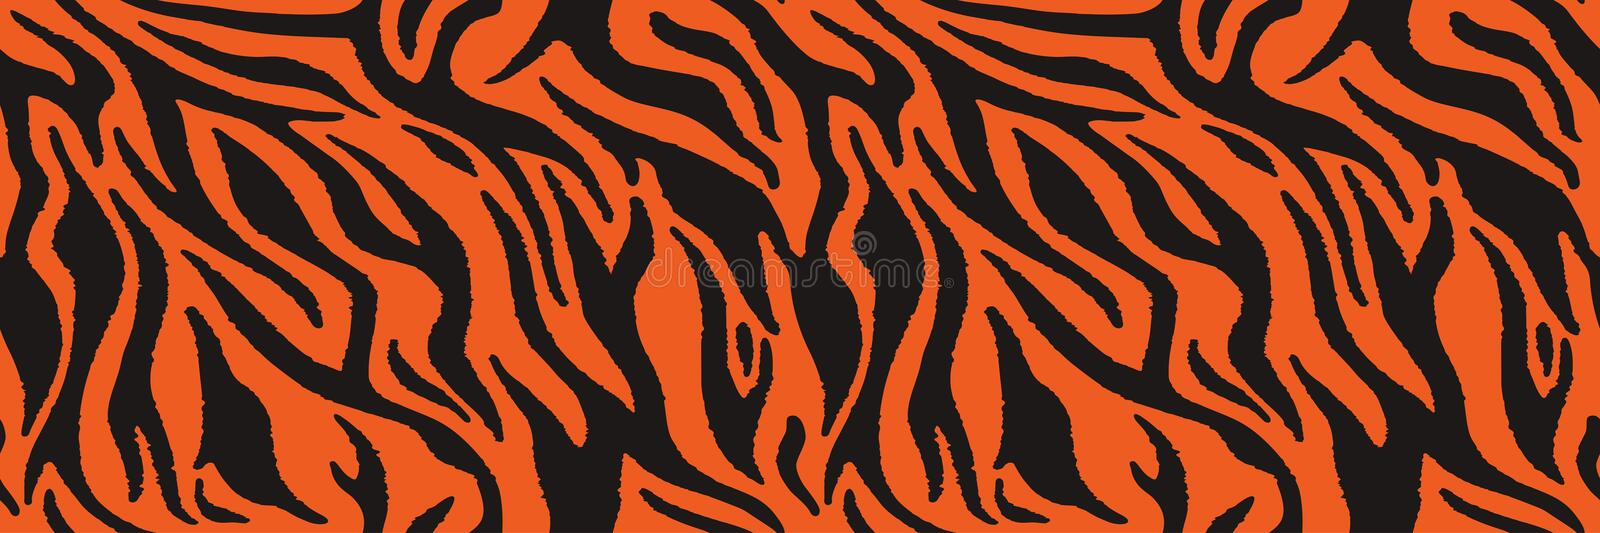 Tiger or zebra fur repeating texture. Animal skin stripes, jungle wallpapers. Seamless vector pattern royalty free illustration